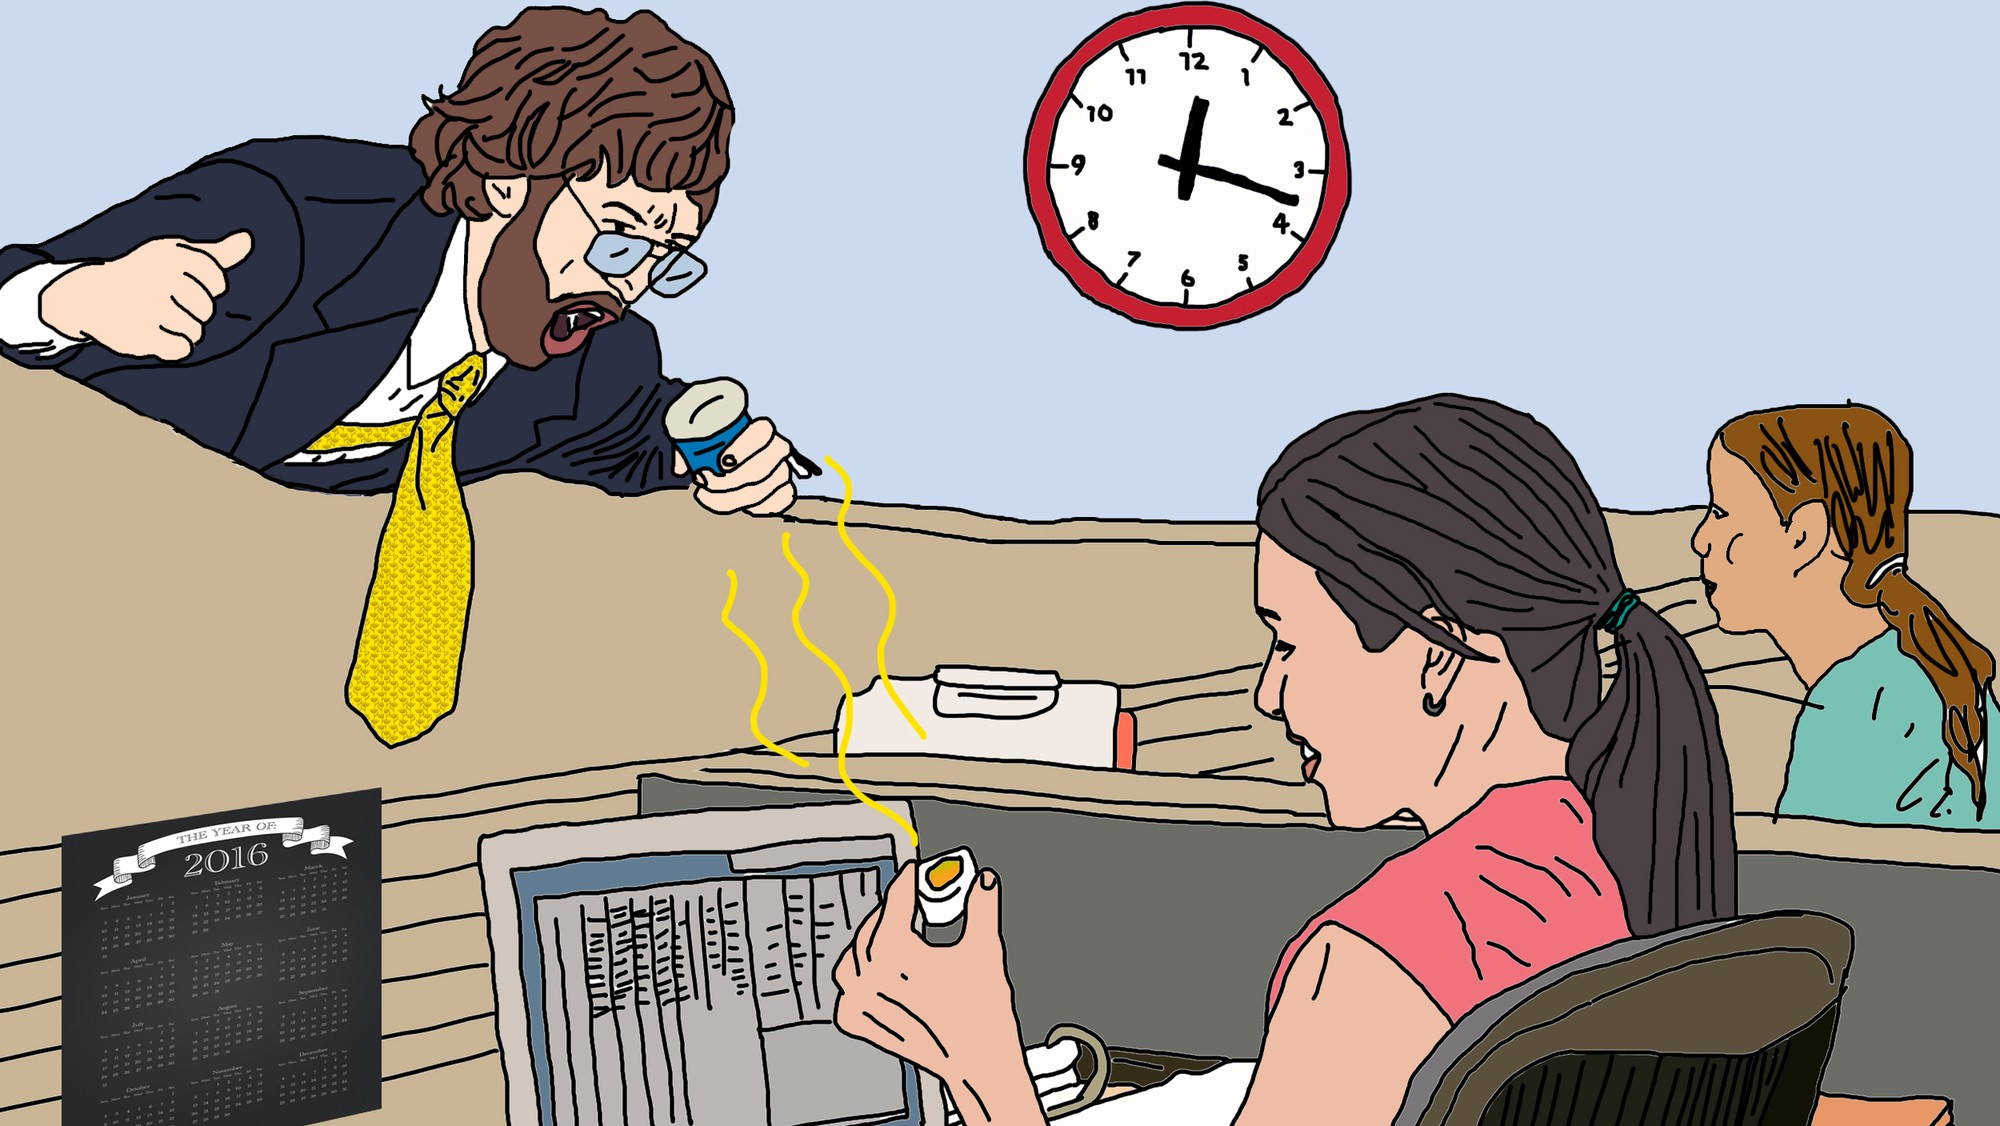 illustration-smelly-office-lunch-tease-today-160825_8250bcdfcc424a08ca22fe2ee22467fa